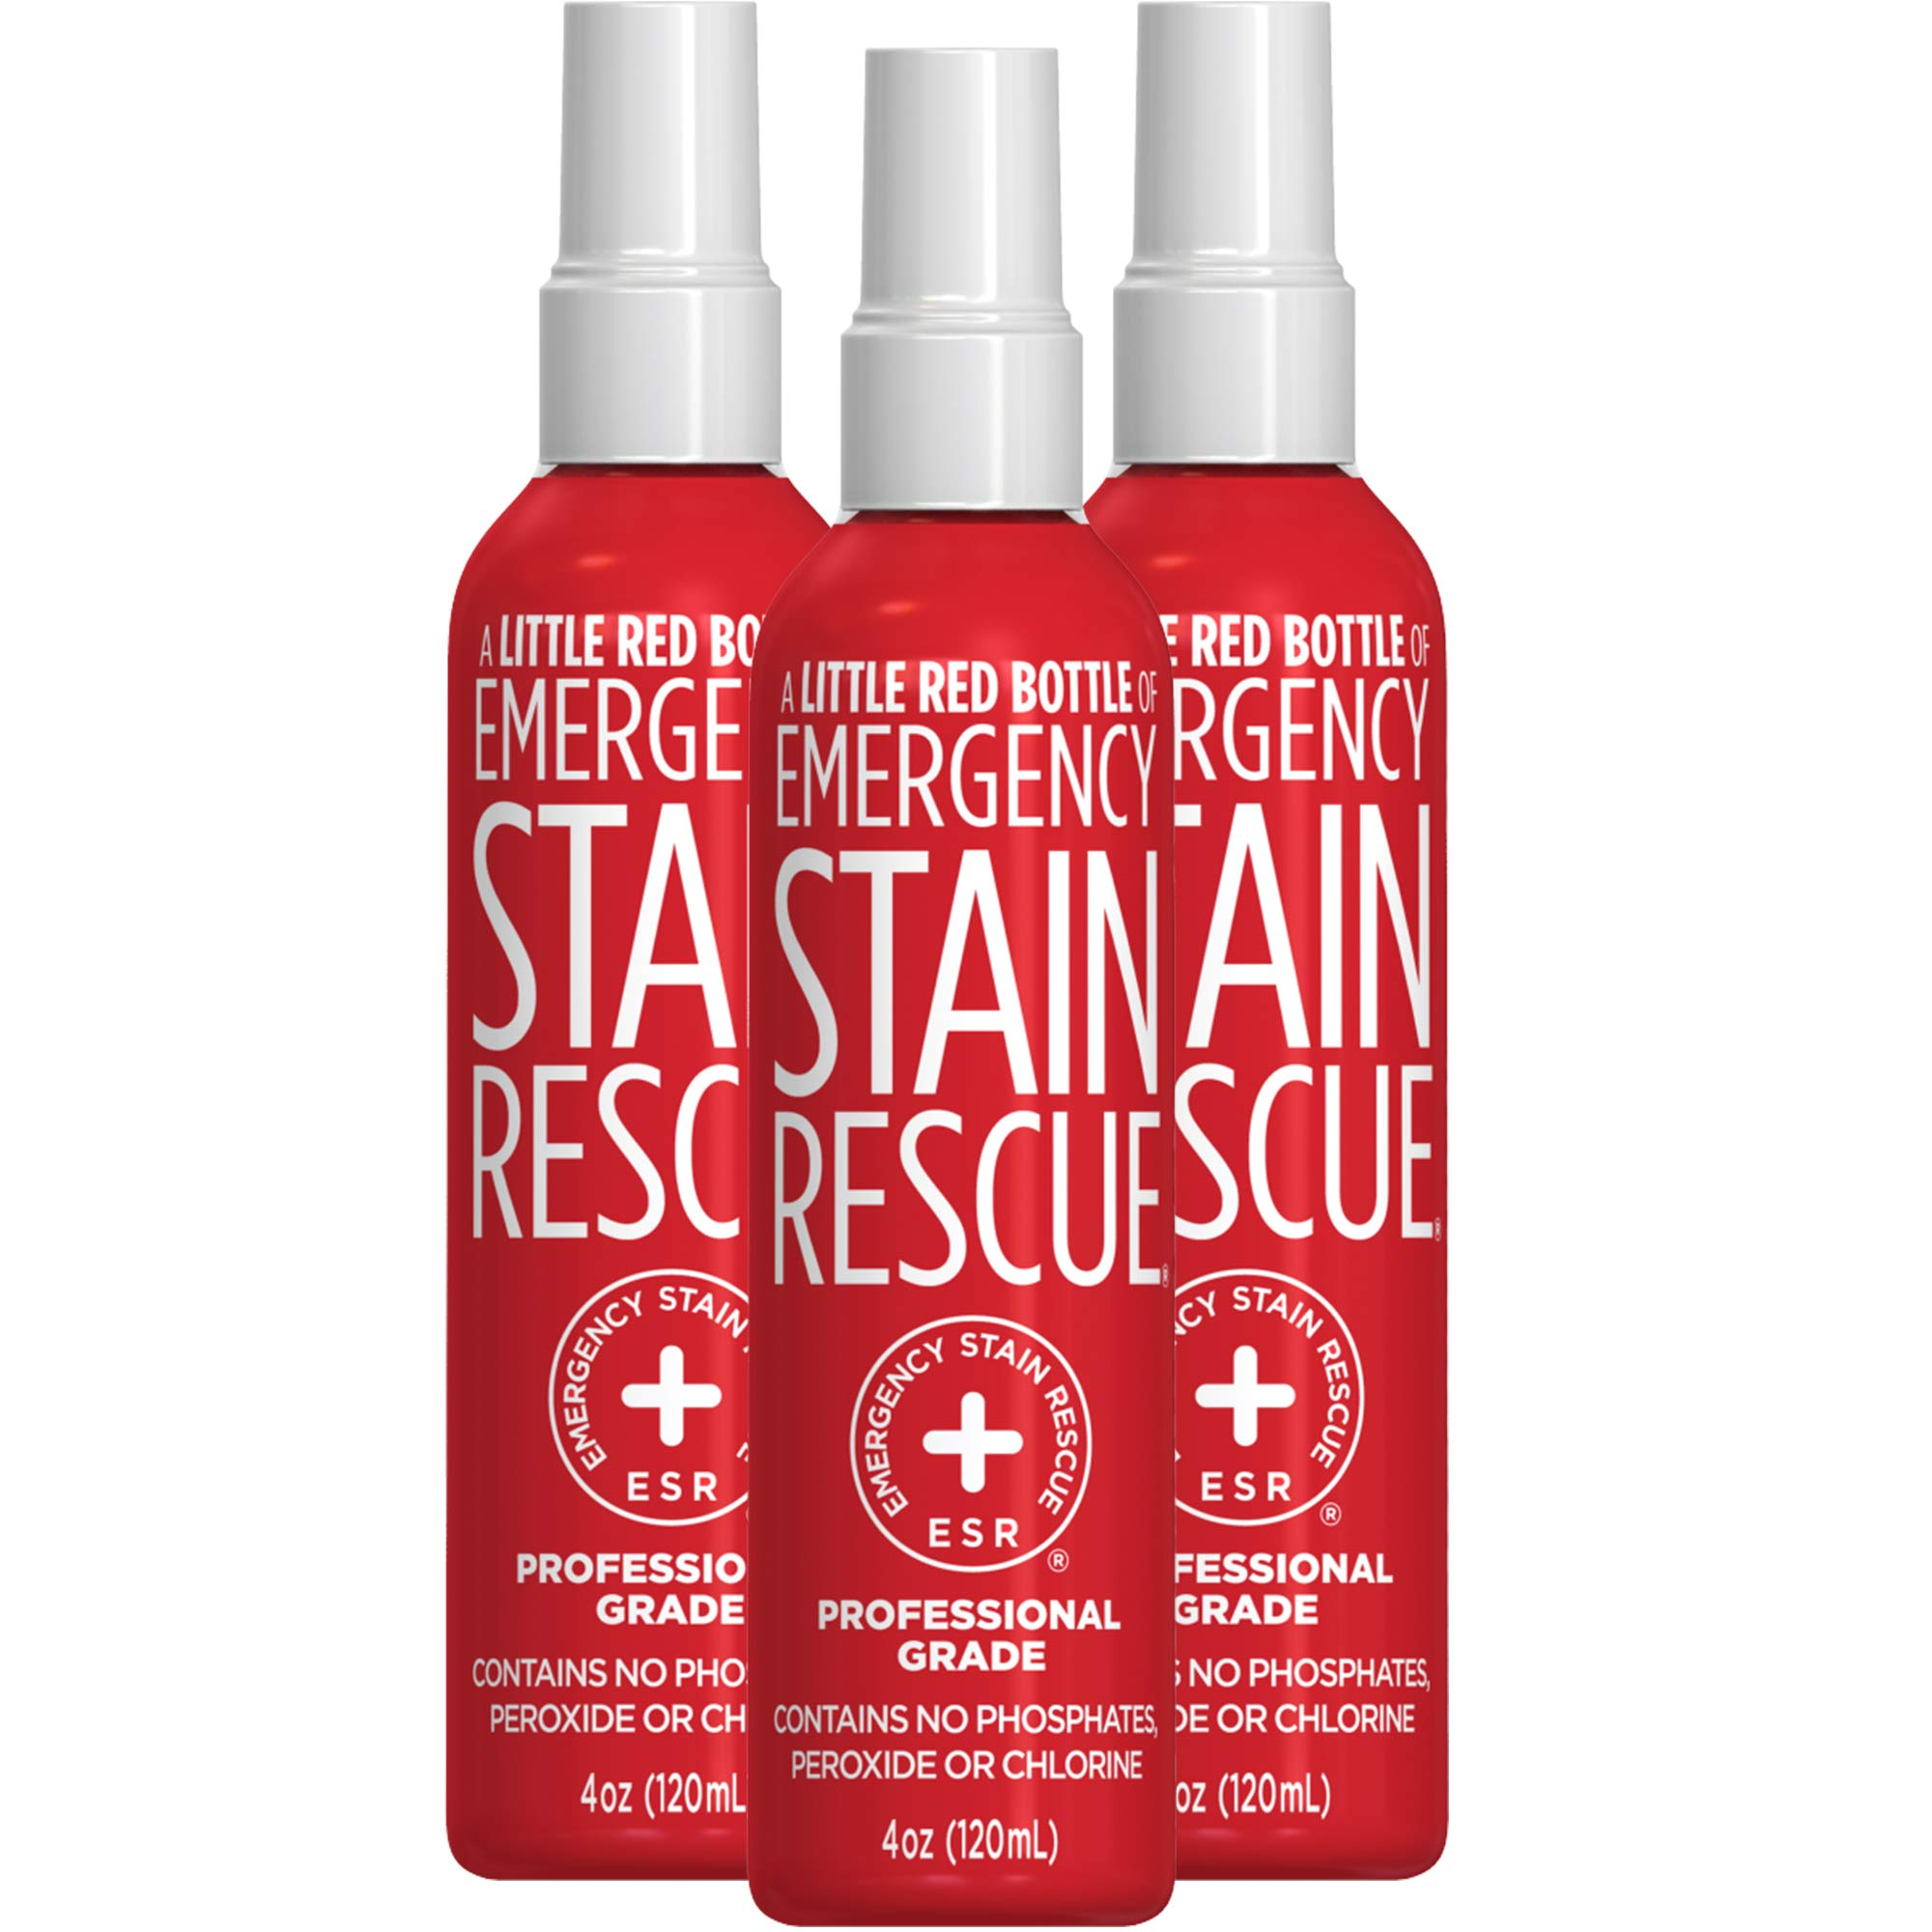 Emergency Stain Rescue Professional Grade Formula Stain Remover (120ml, 4 oz) | 3 Pack | Stain Remover for Clothes | Carpet Spot Cleaner | Non Toxic by Emergency Stain Rescue